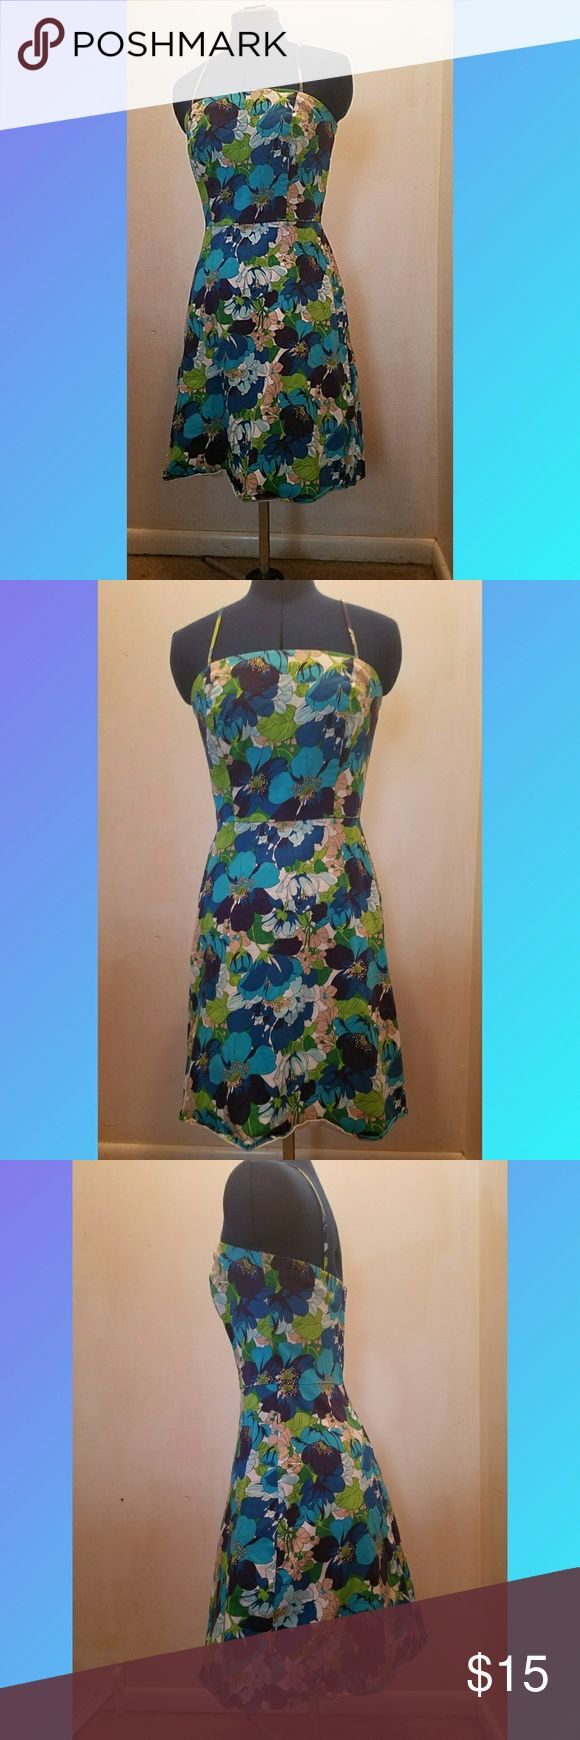 Alyn paige floral hundreds womens juniors 7/8 Very midcentury modern feel of a pattern. Large blue/green/white floral pattern. Very minor wear noted. Defined waist makes it very flattering and zips up the back. Bust 36 length 30. Length does not include straps. Falls right above the knee. Size 7/8 Alyn Paige Dresses Midi